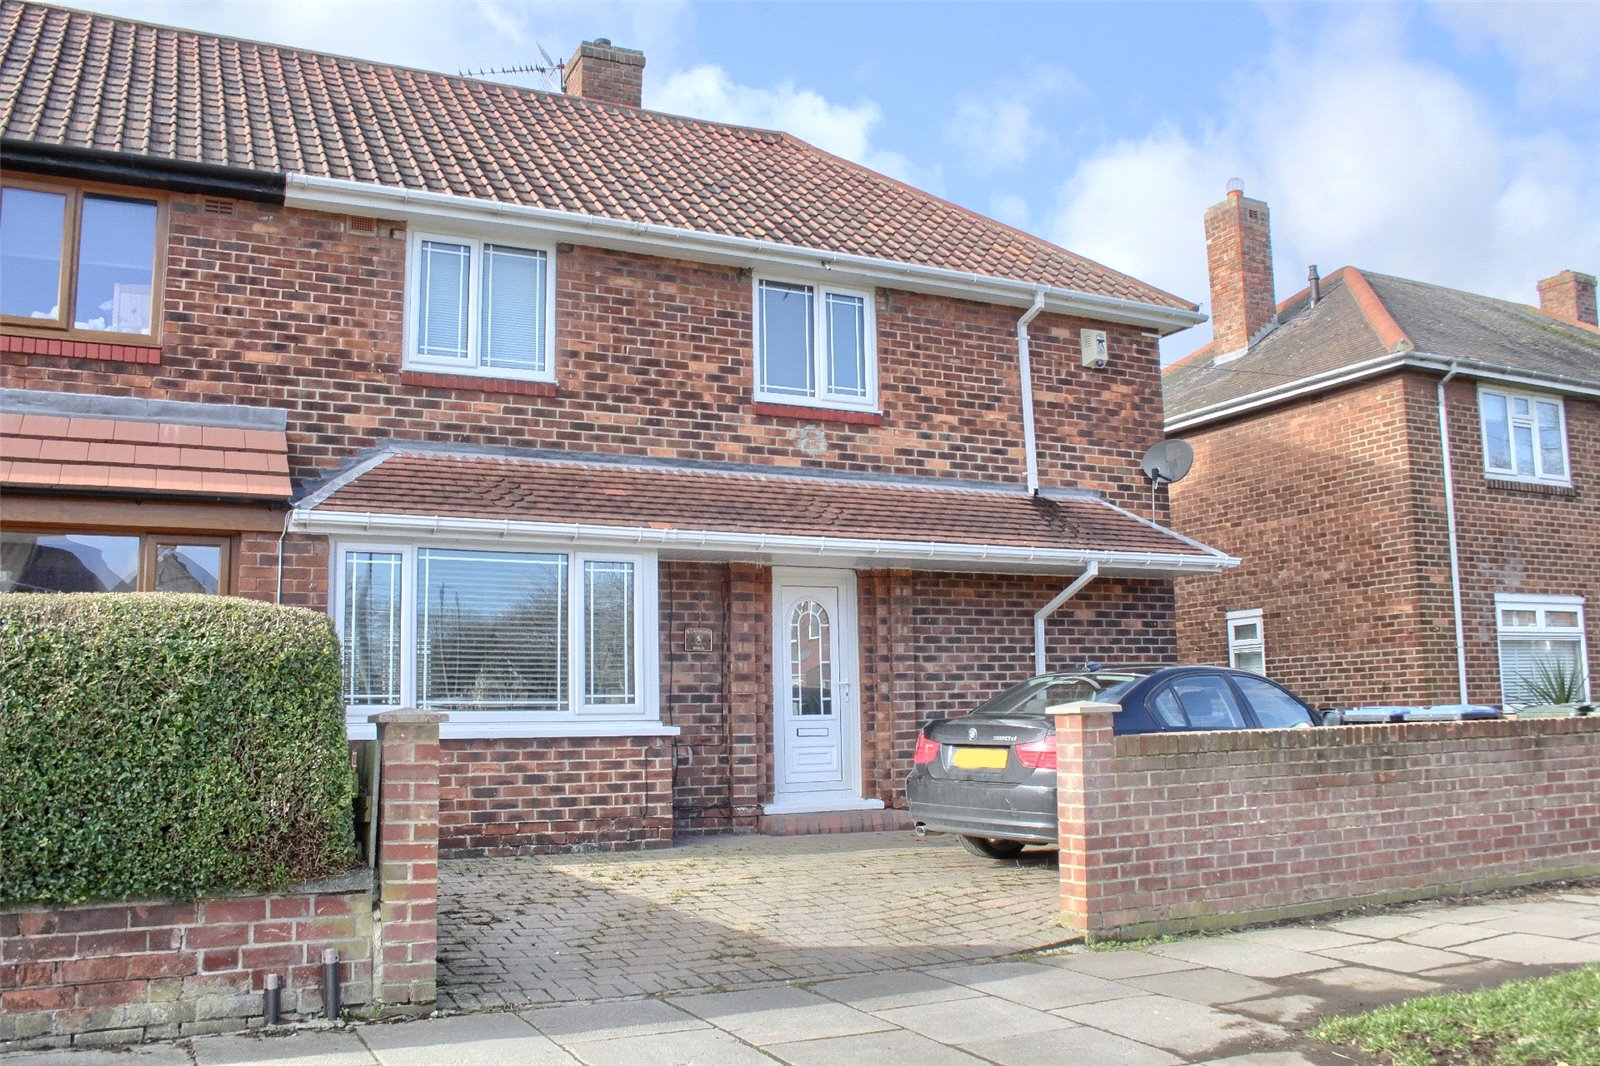 3 bed house for sale in Cavendish Road, Beechwood 1